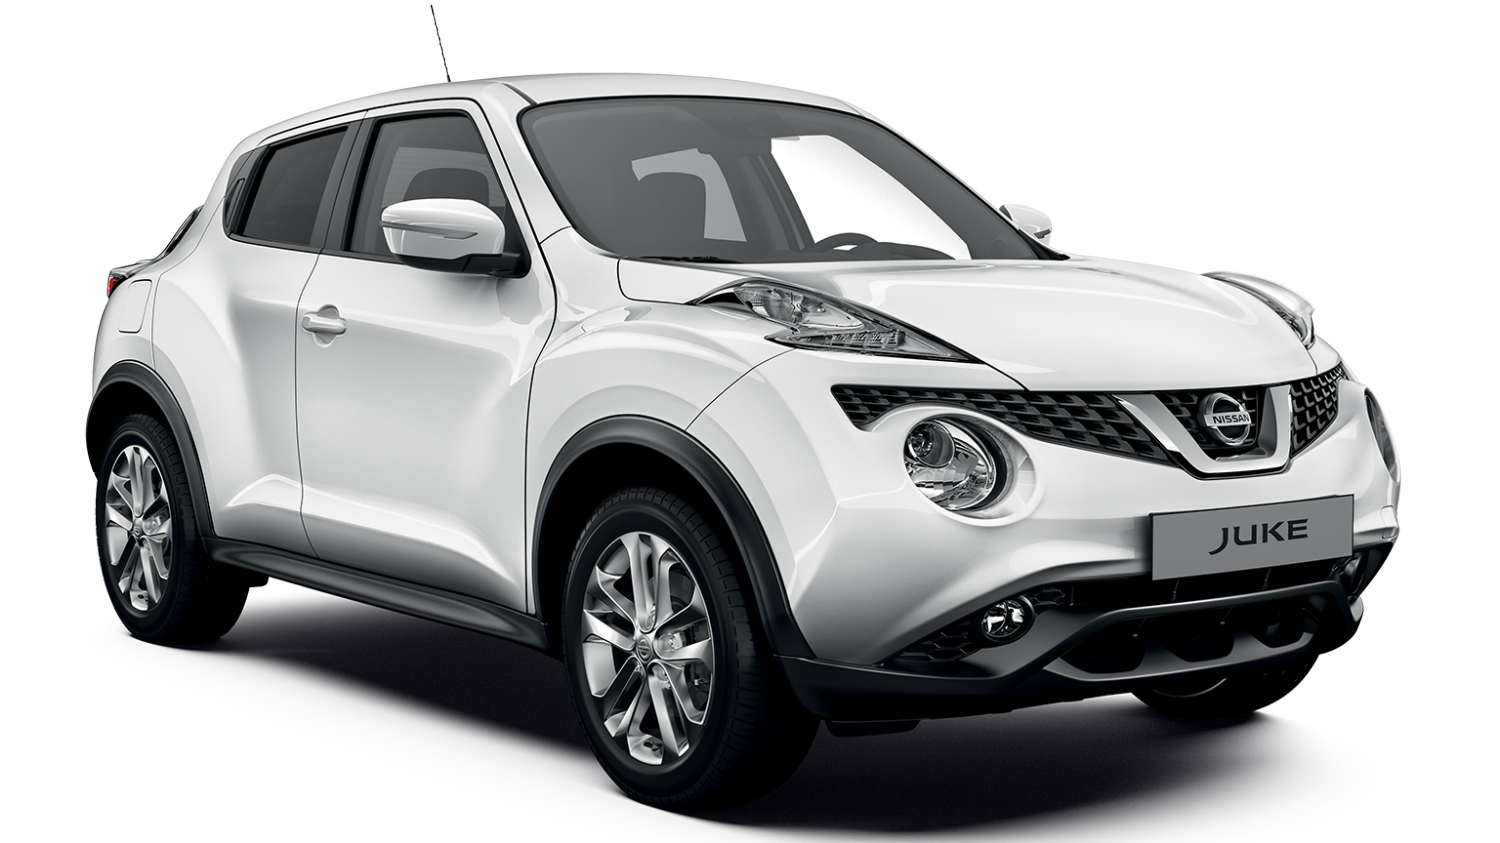 prix et caract ristiques petit crossover suv nissan juke nissan. Black Bedroom Furniture Sets. Home Design Ideas